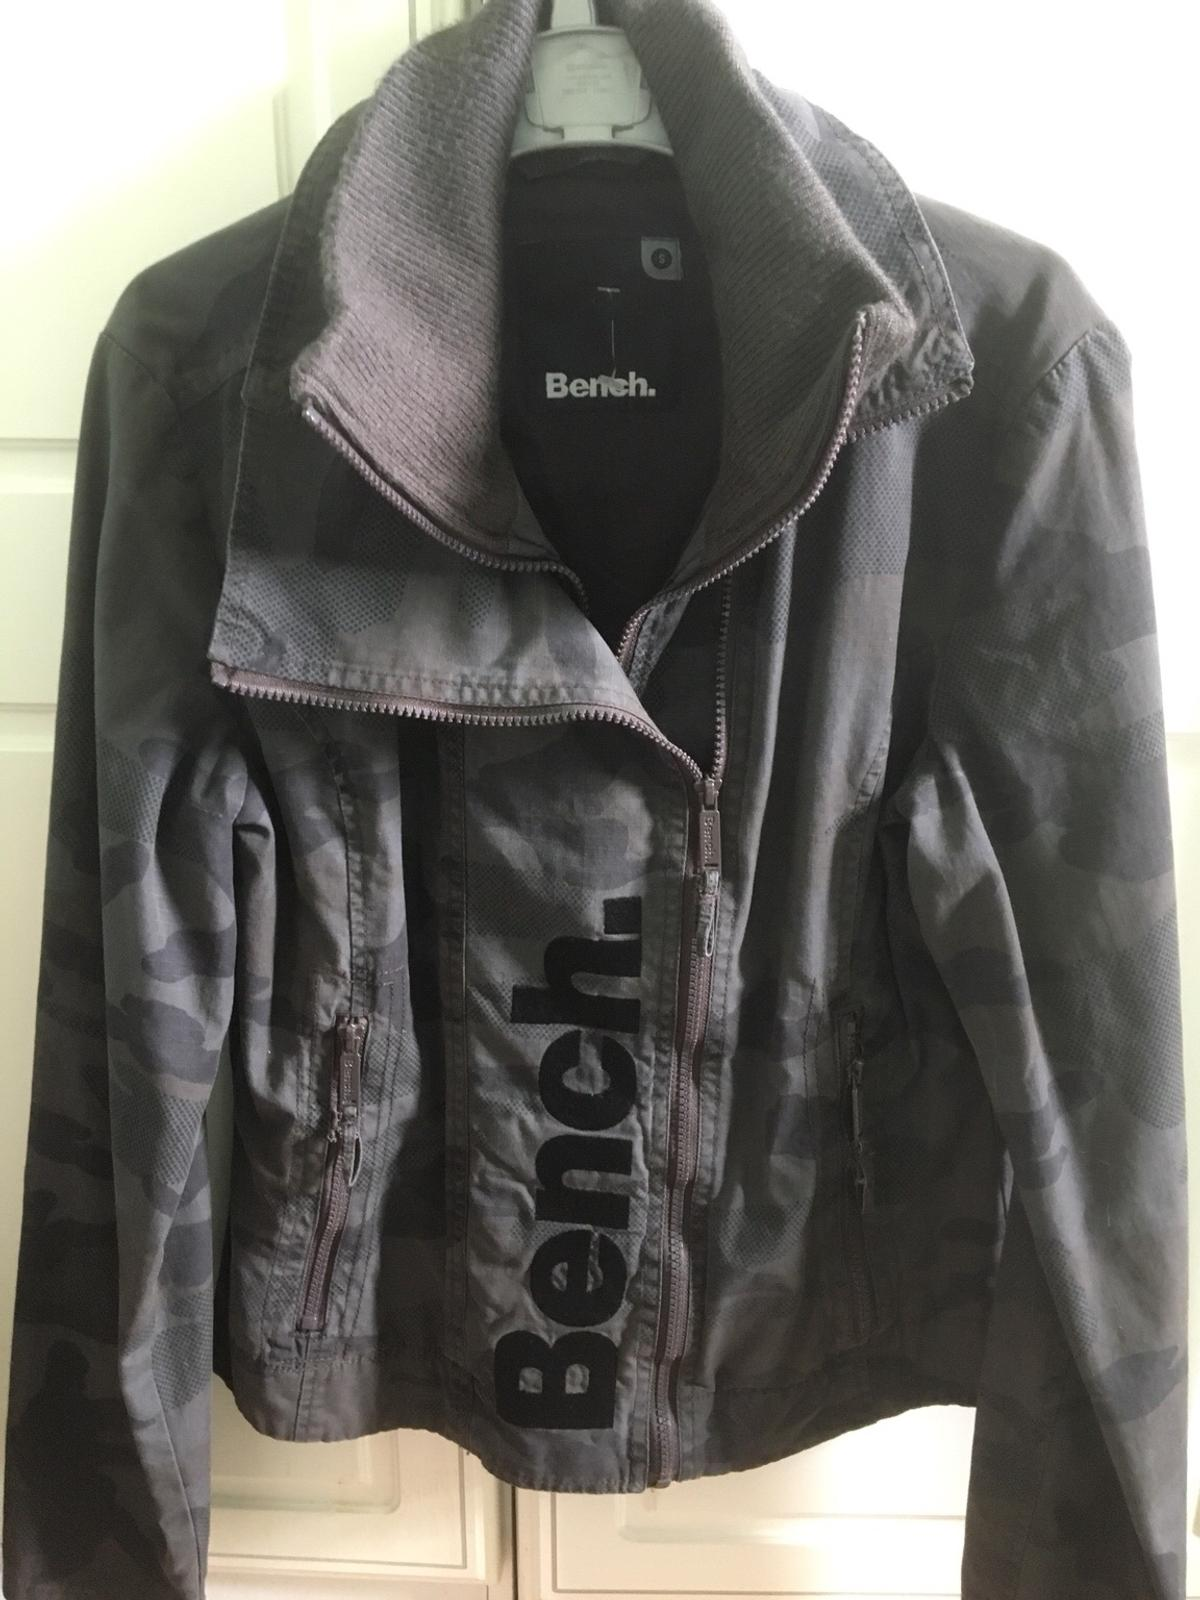 Ladies Bench Jacket In South Derbyshire For 6 50 For Sale Shpock